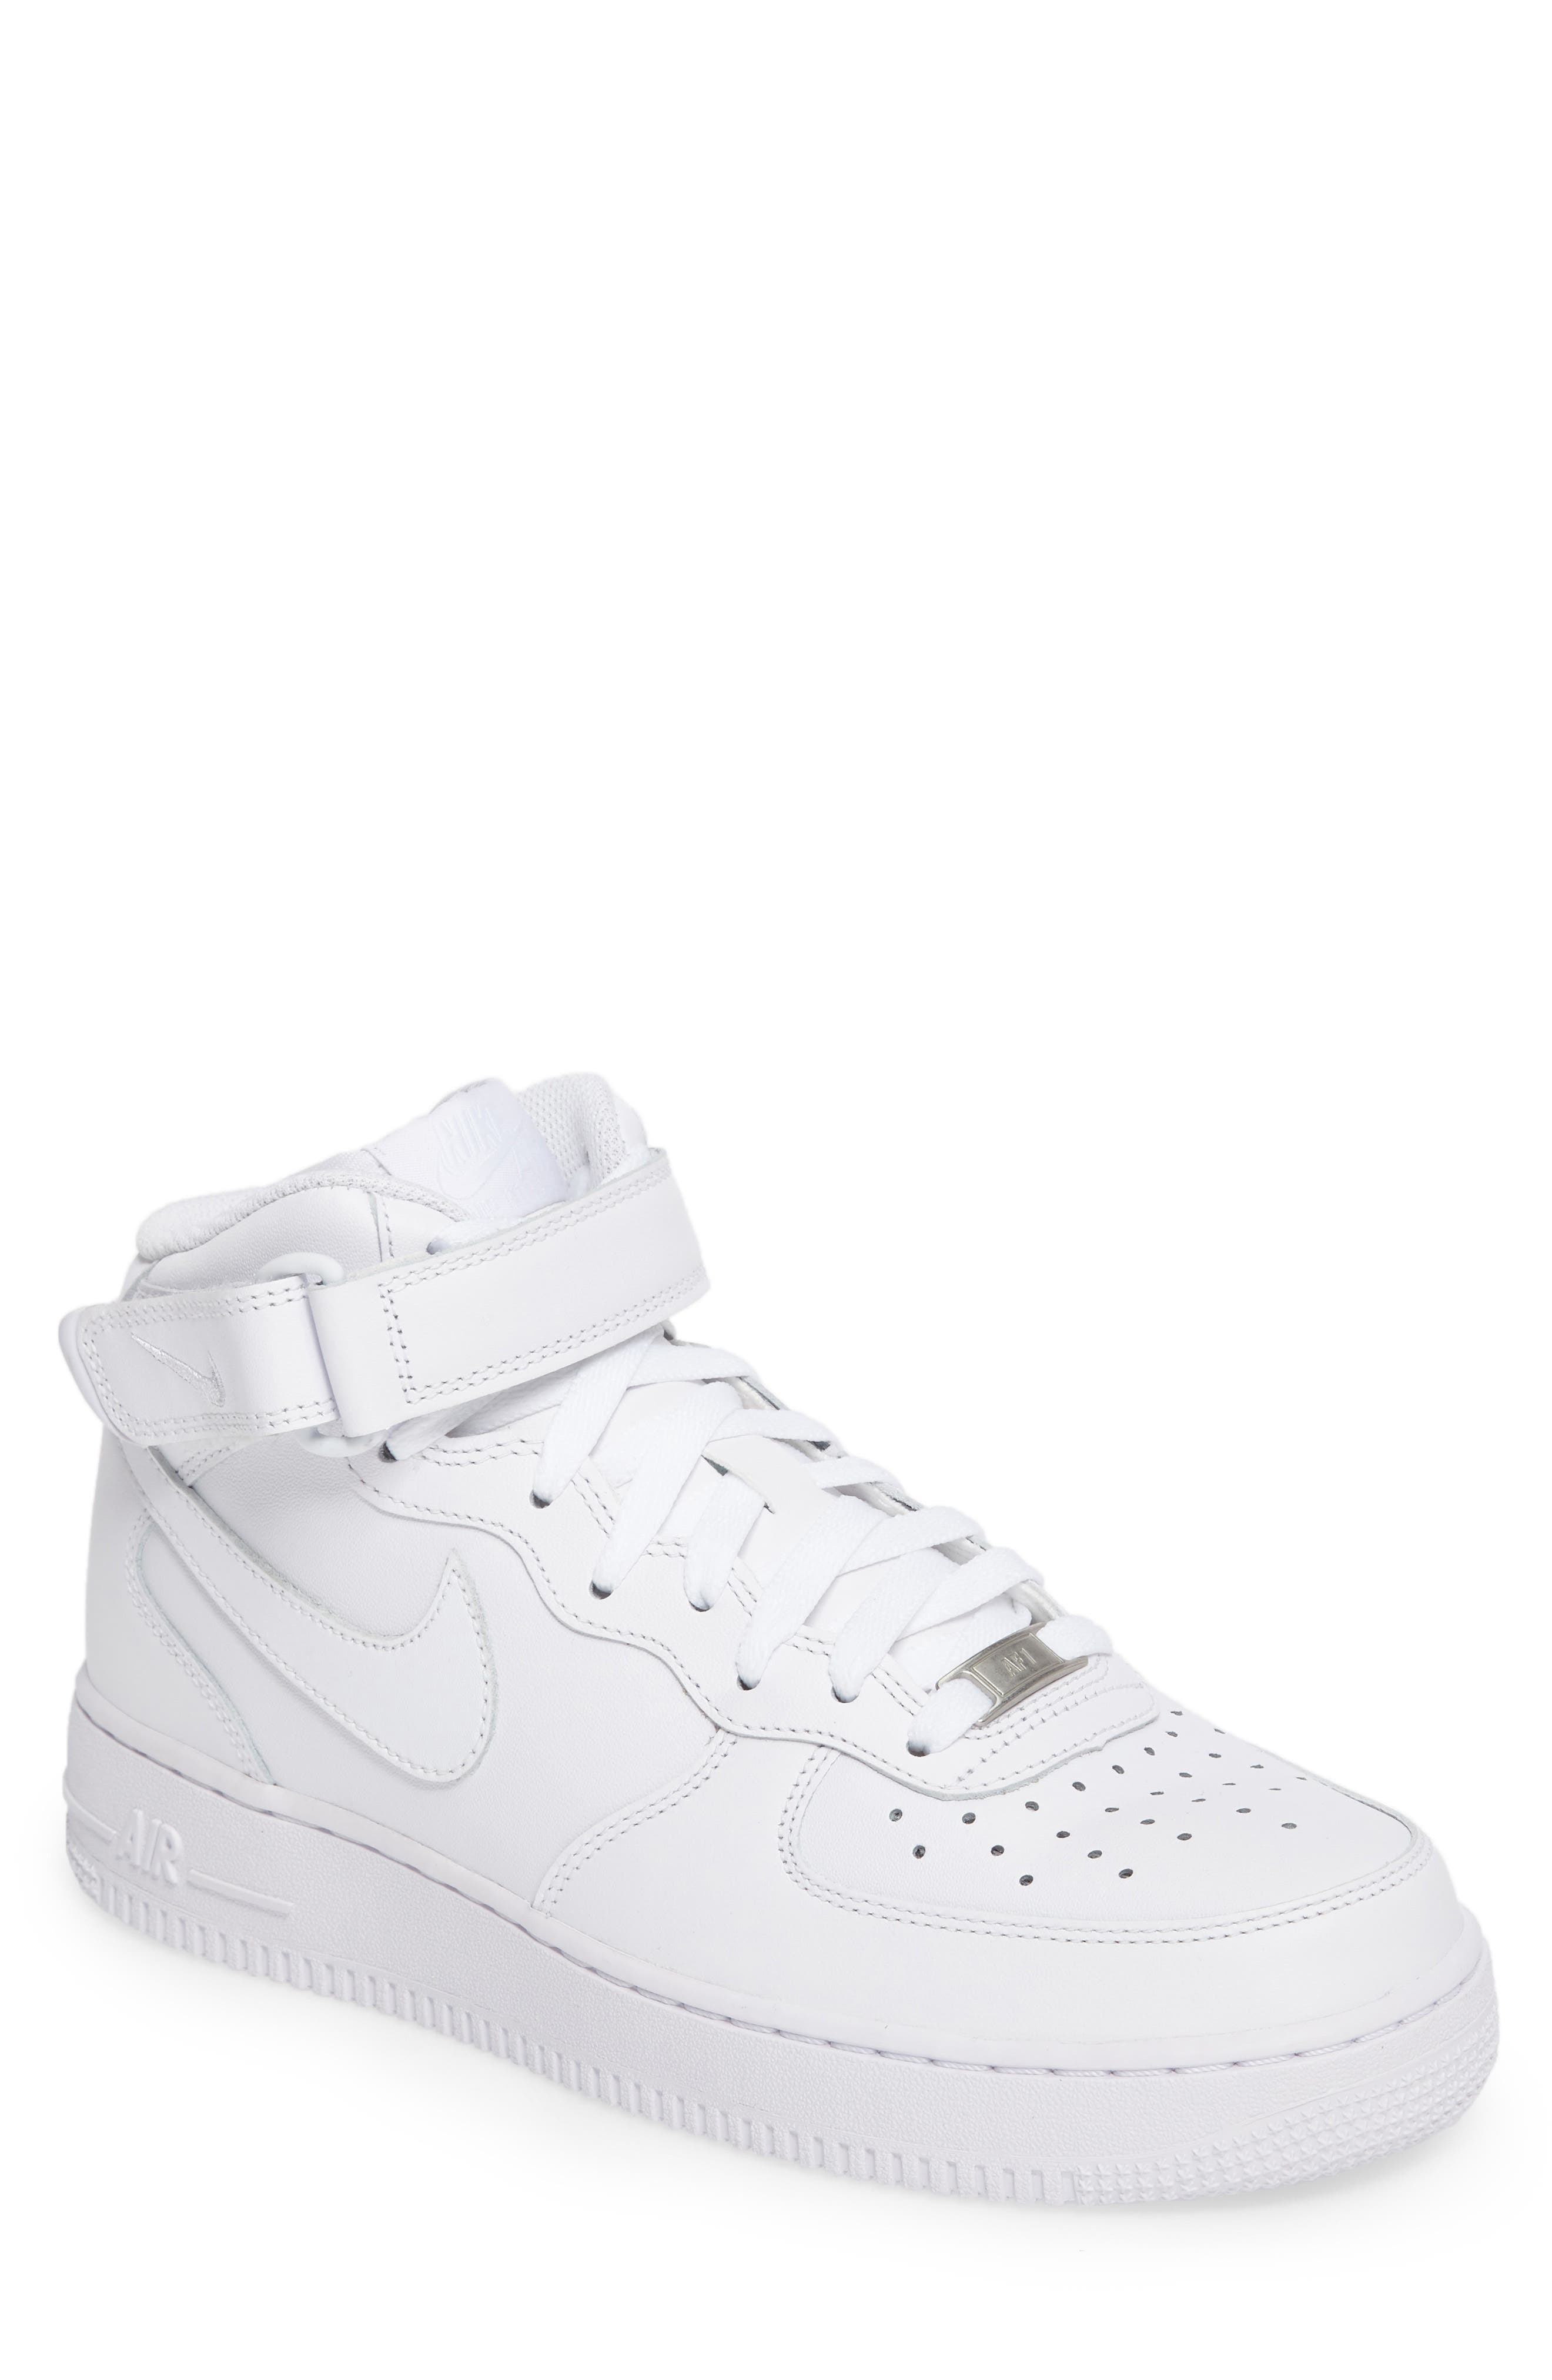 Air Force 1 Mid '07 Sneaker,                         Main,                         color, White/ White